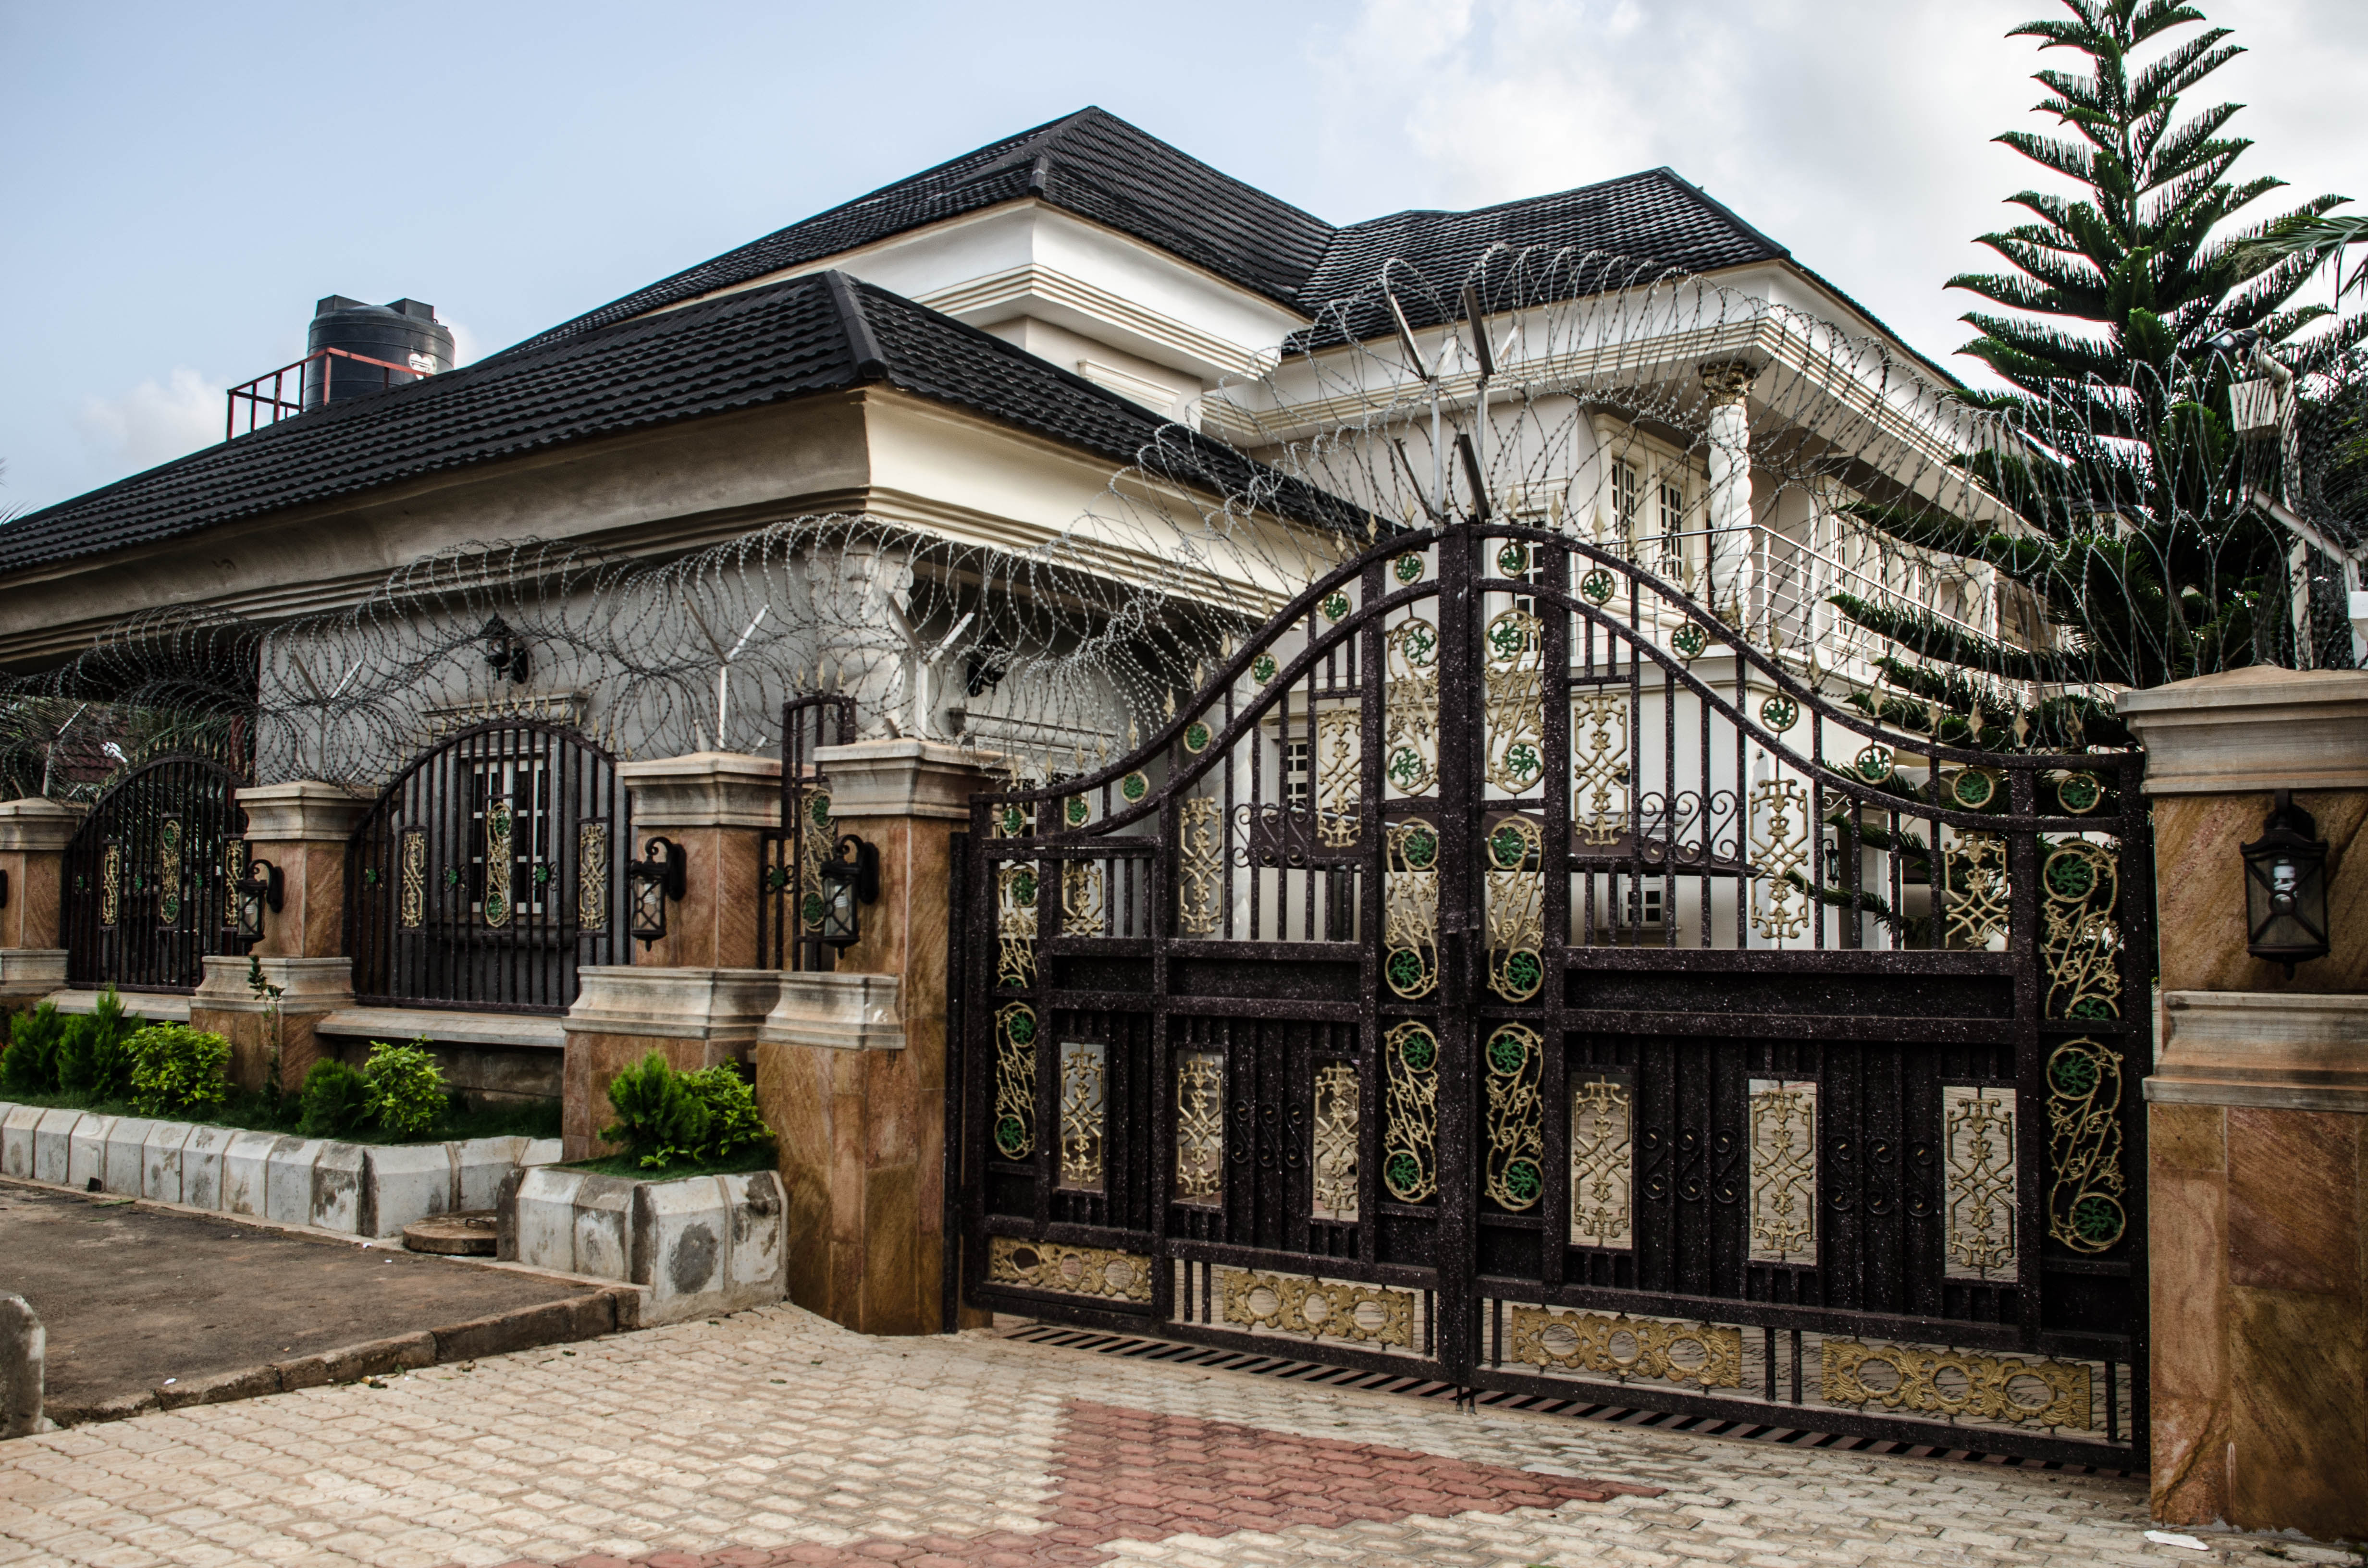 Image gallery houses abuja nigeria for Mansions in nigeria for sale